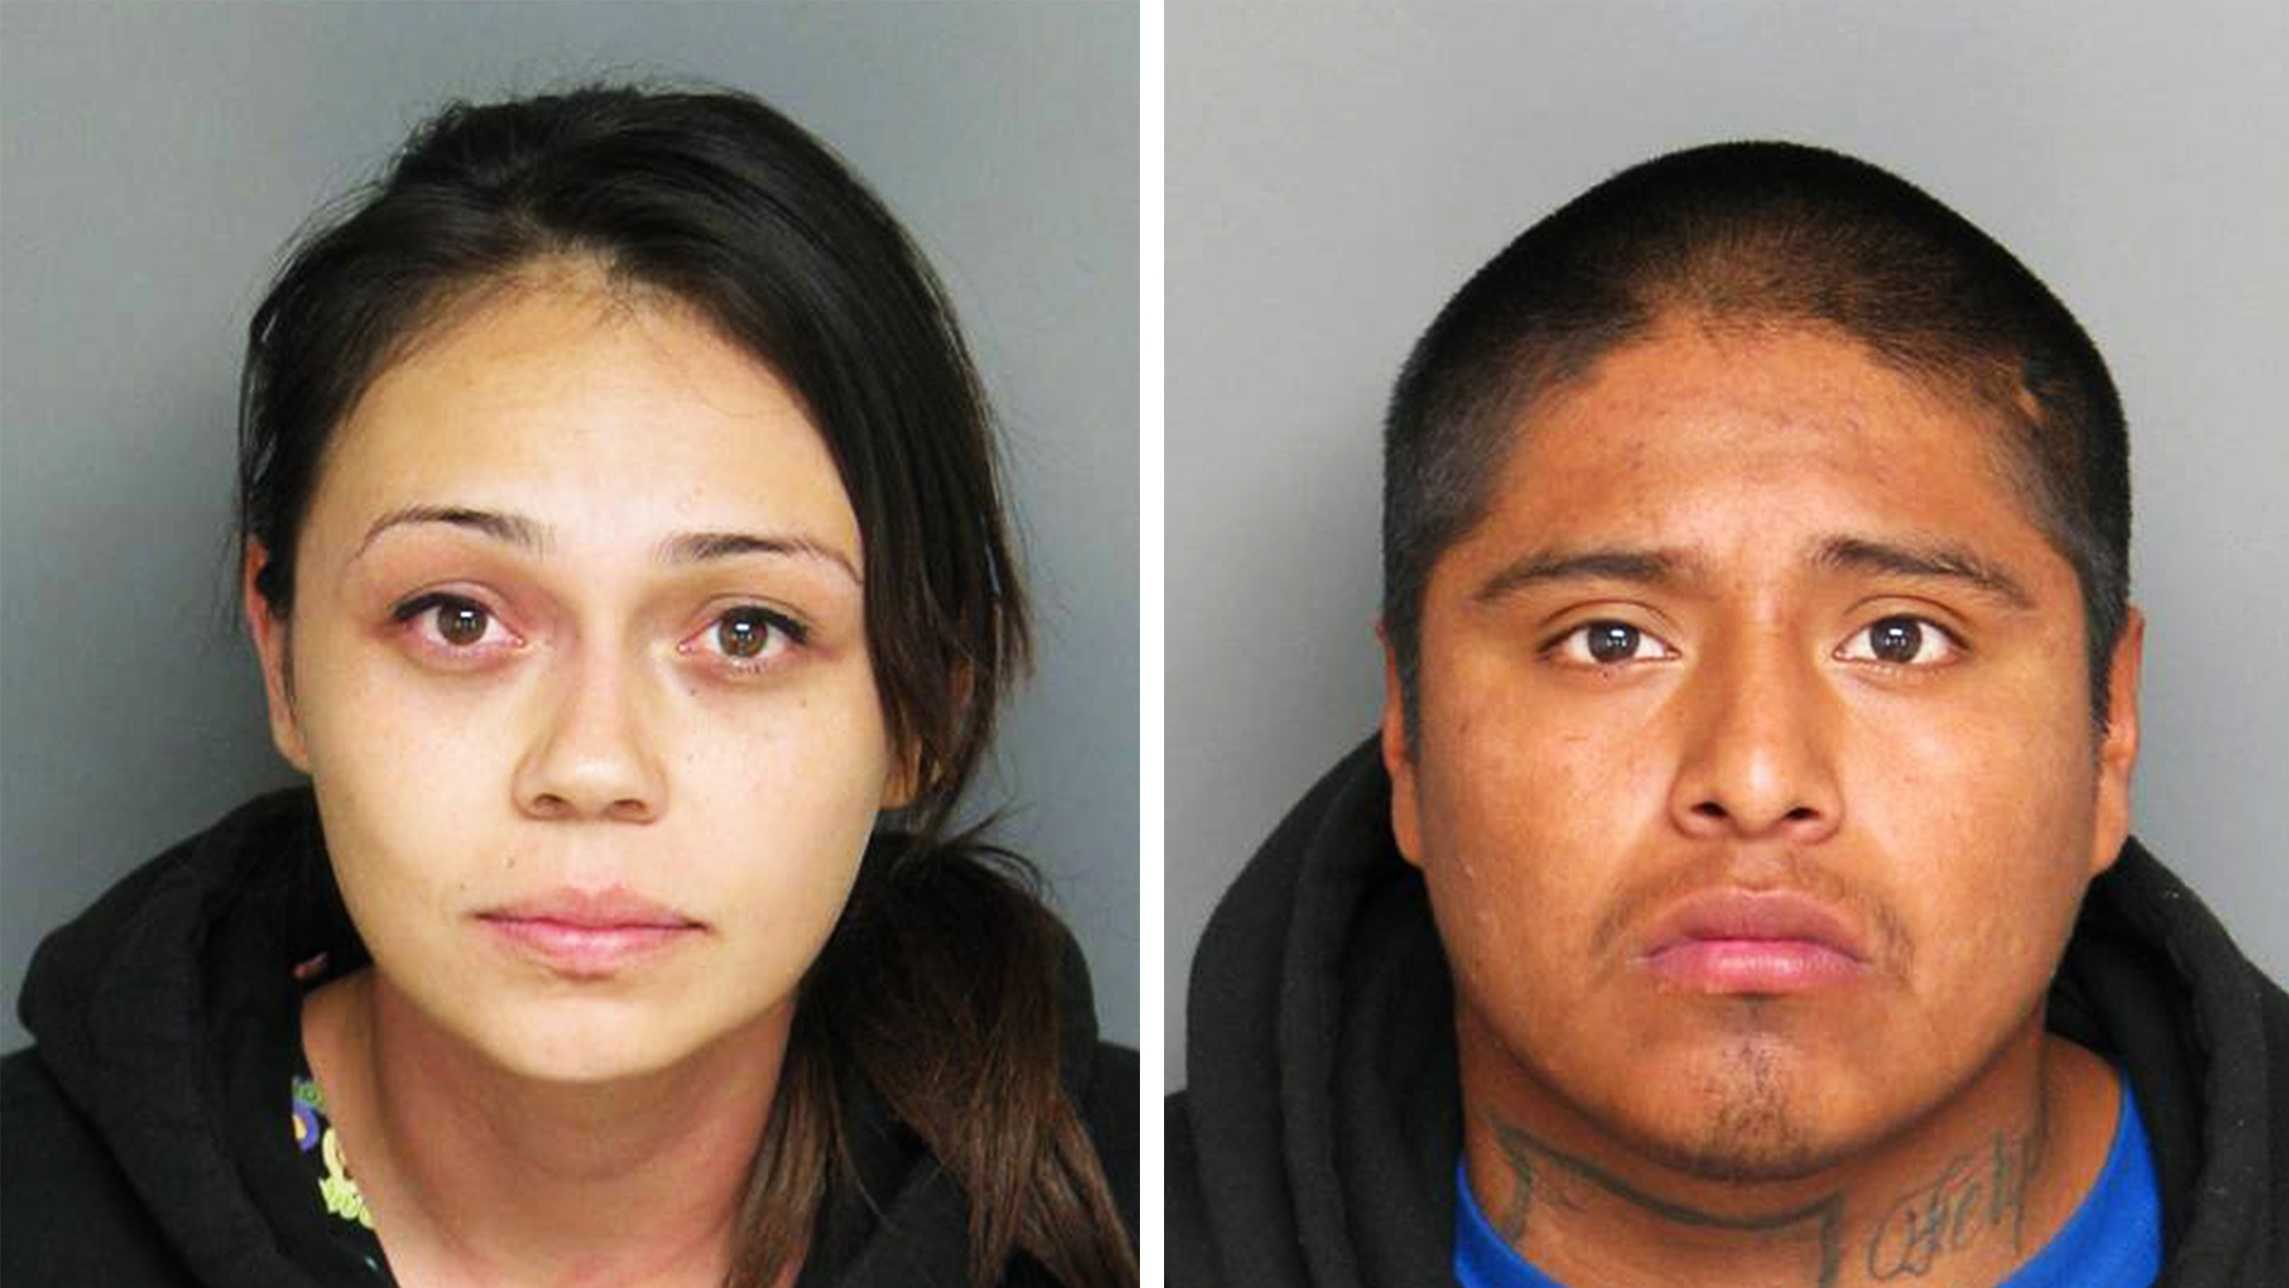 Susana Mendez, left, and Alejandro Ramirez, right, are seen in police mug shots.